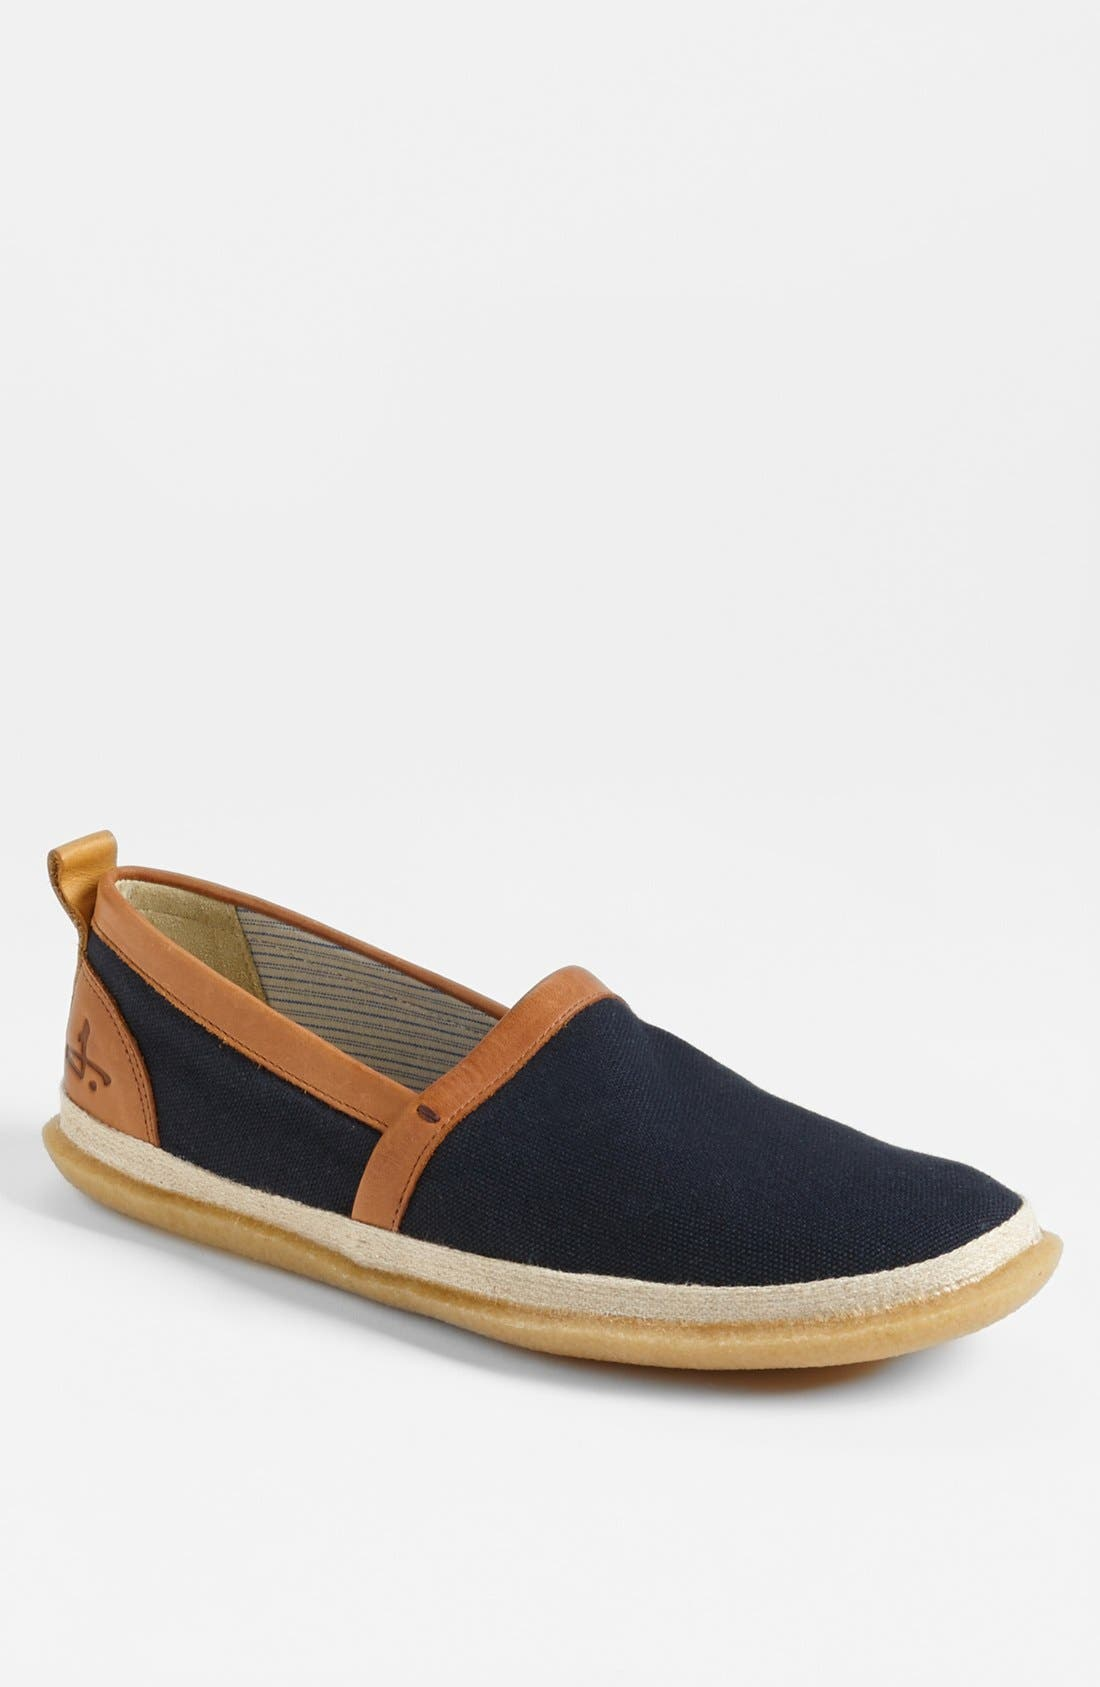 Main Image - J SHOES 'Anglo' Slip-On